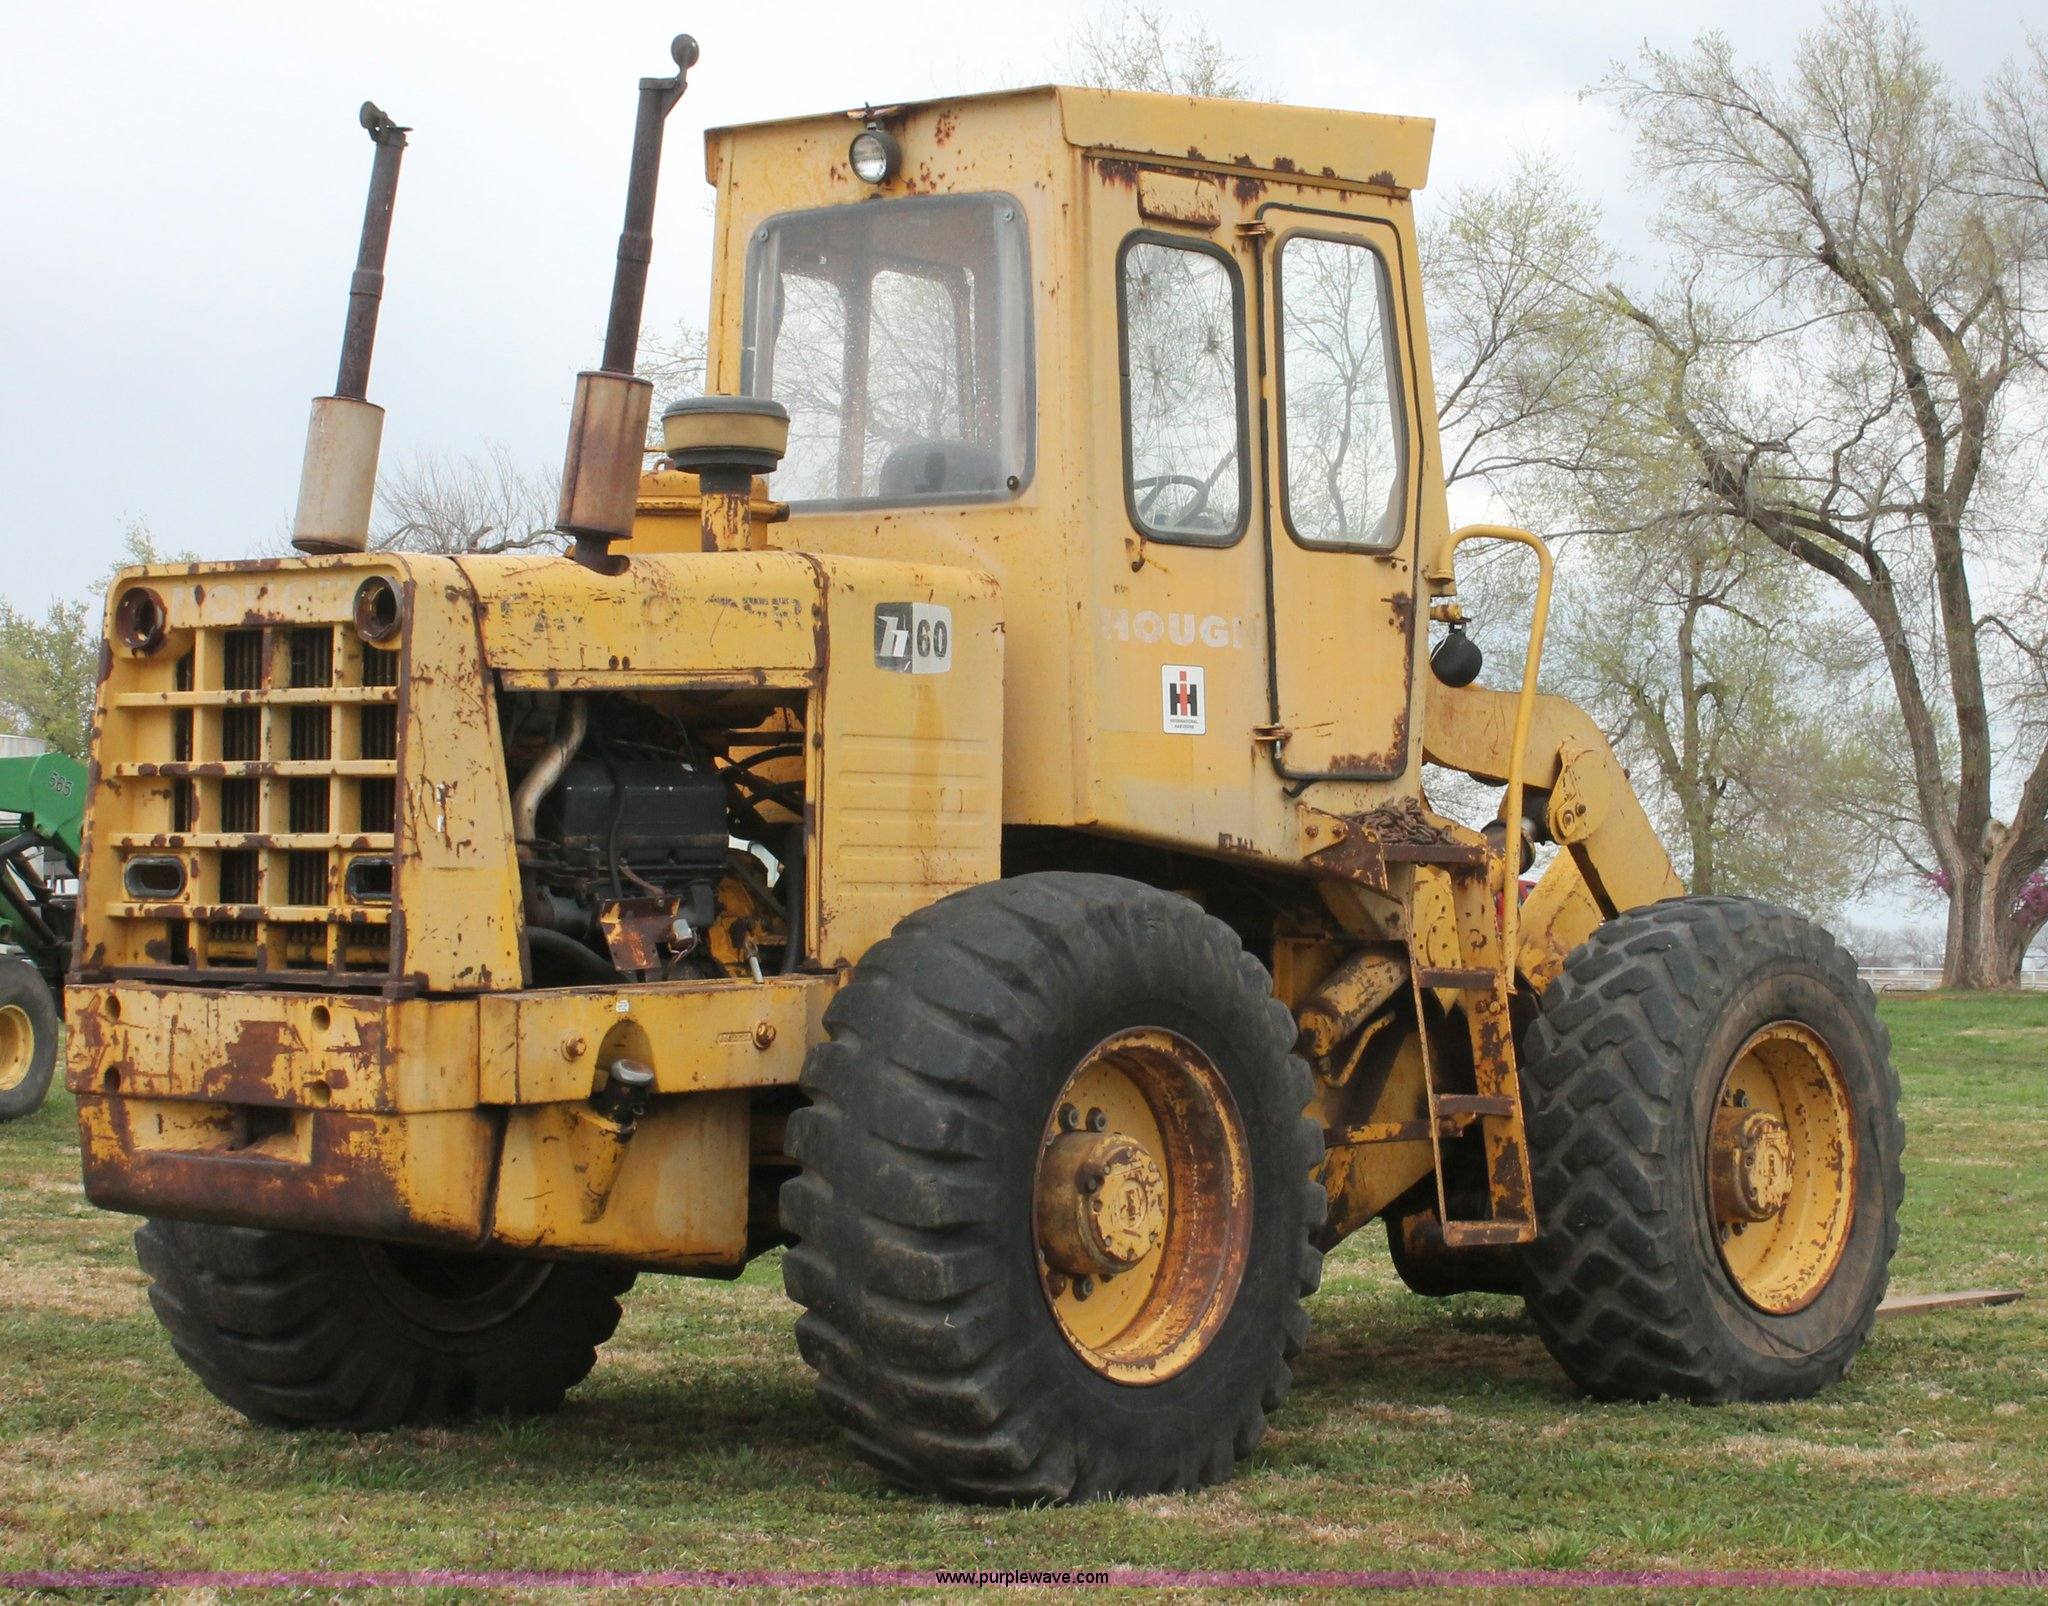 1973 Hough H60 Pay Loader wheel loader | Item H5722 | SOLD!